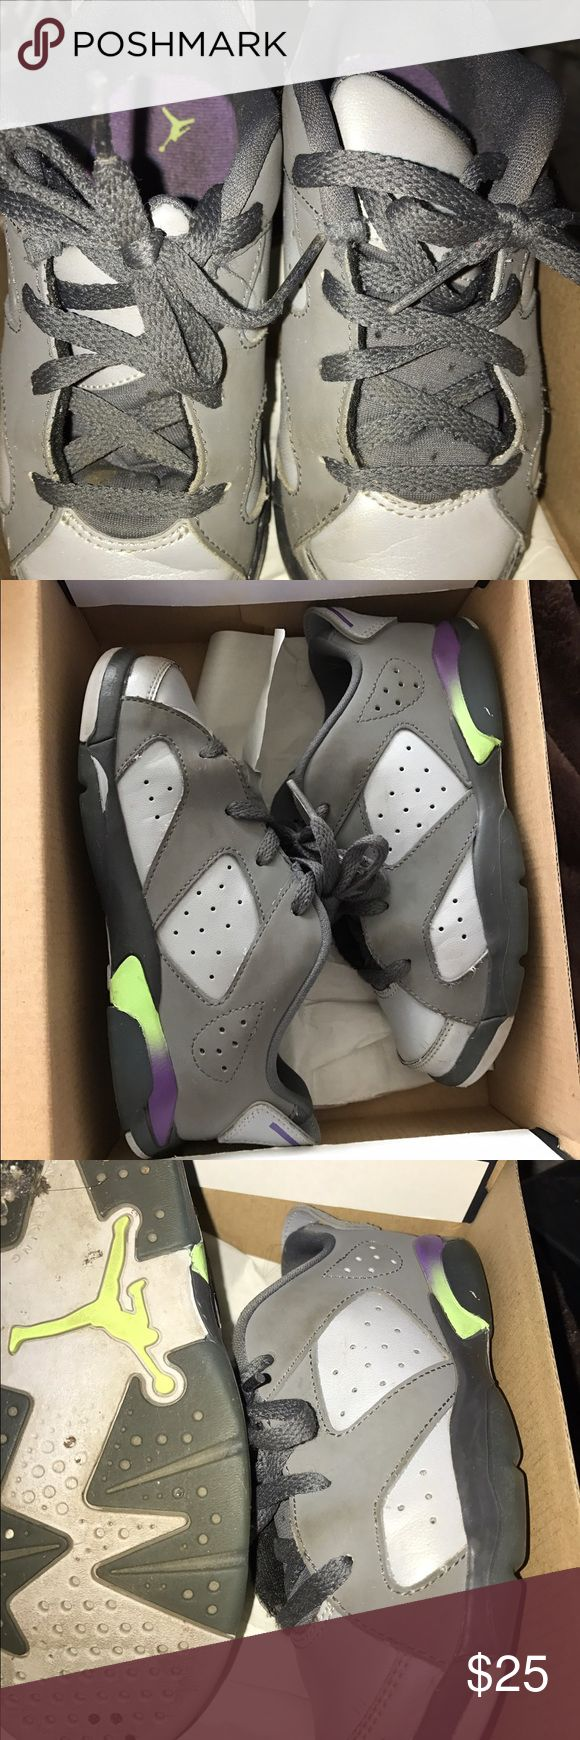 Jordan toddler sneakers Jordan toddler sneakers size 10,low top!used but still good enough for the next toddler 😊 Jordan Shoes Sneakers